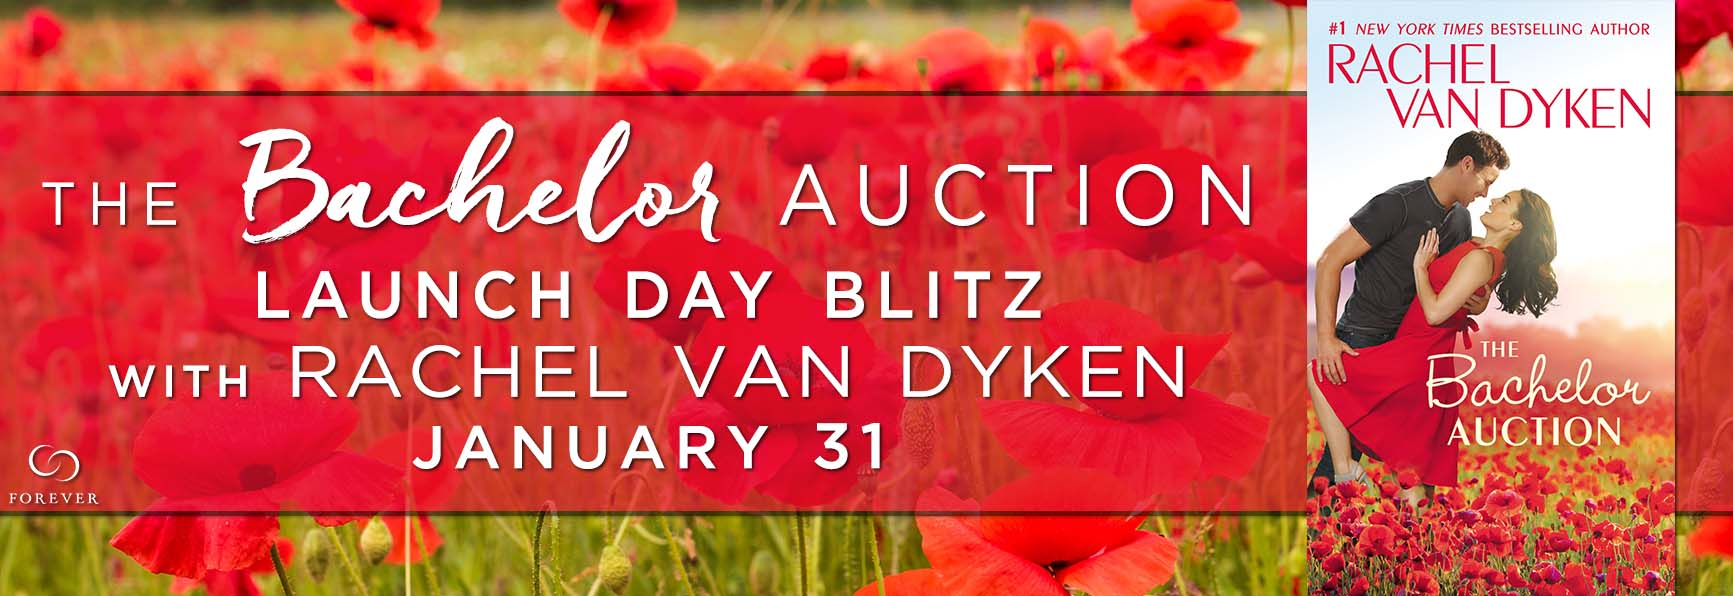 GIVEAWAY - The Bachelor Auction by Rachel Van Dyken